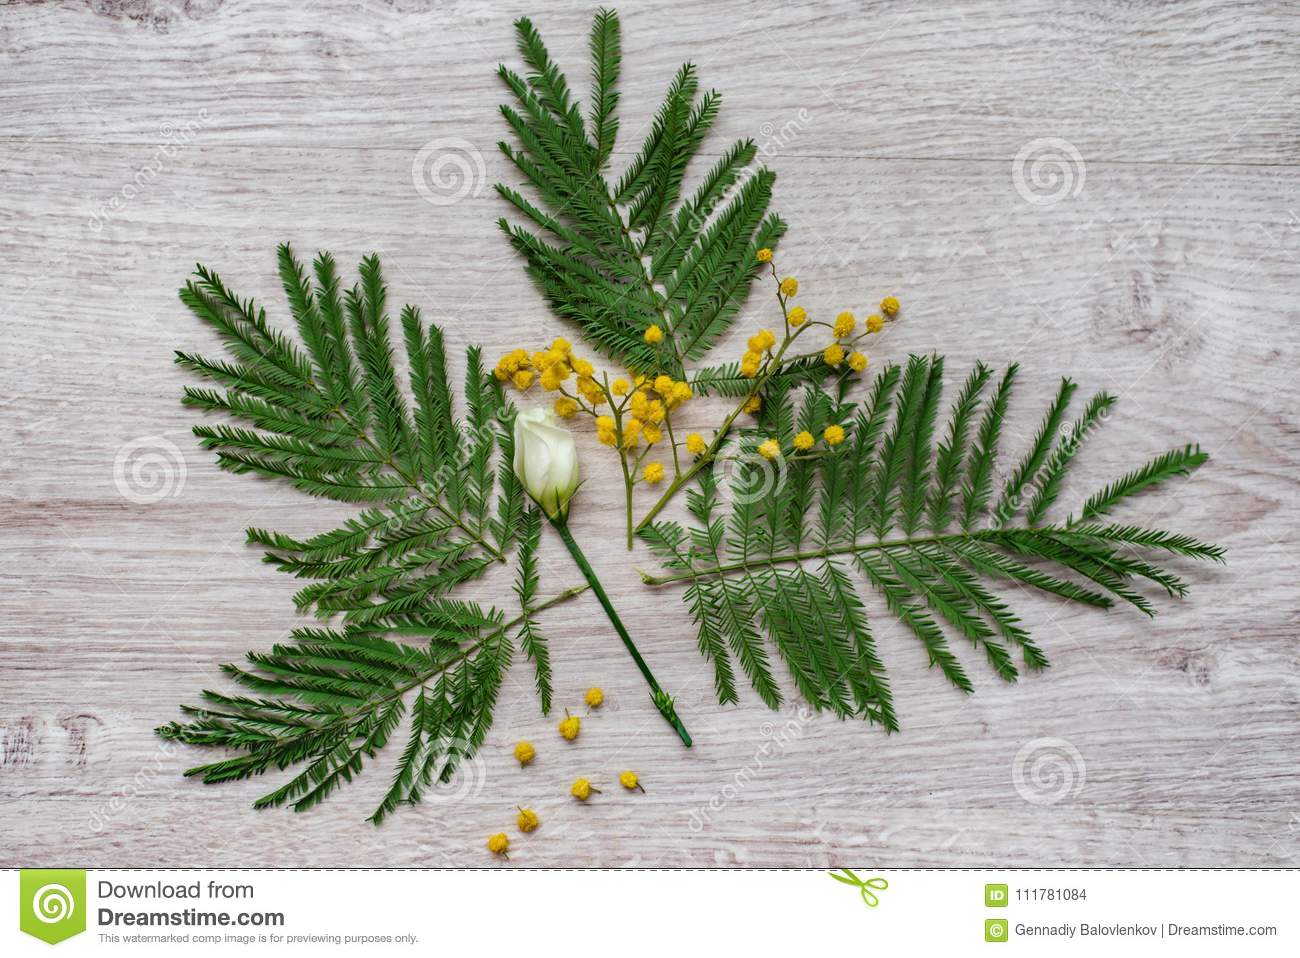 Still-life floral decorative design flower composition made from mimosas on a wooden background.